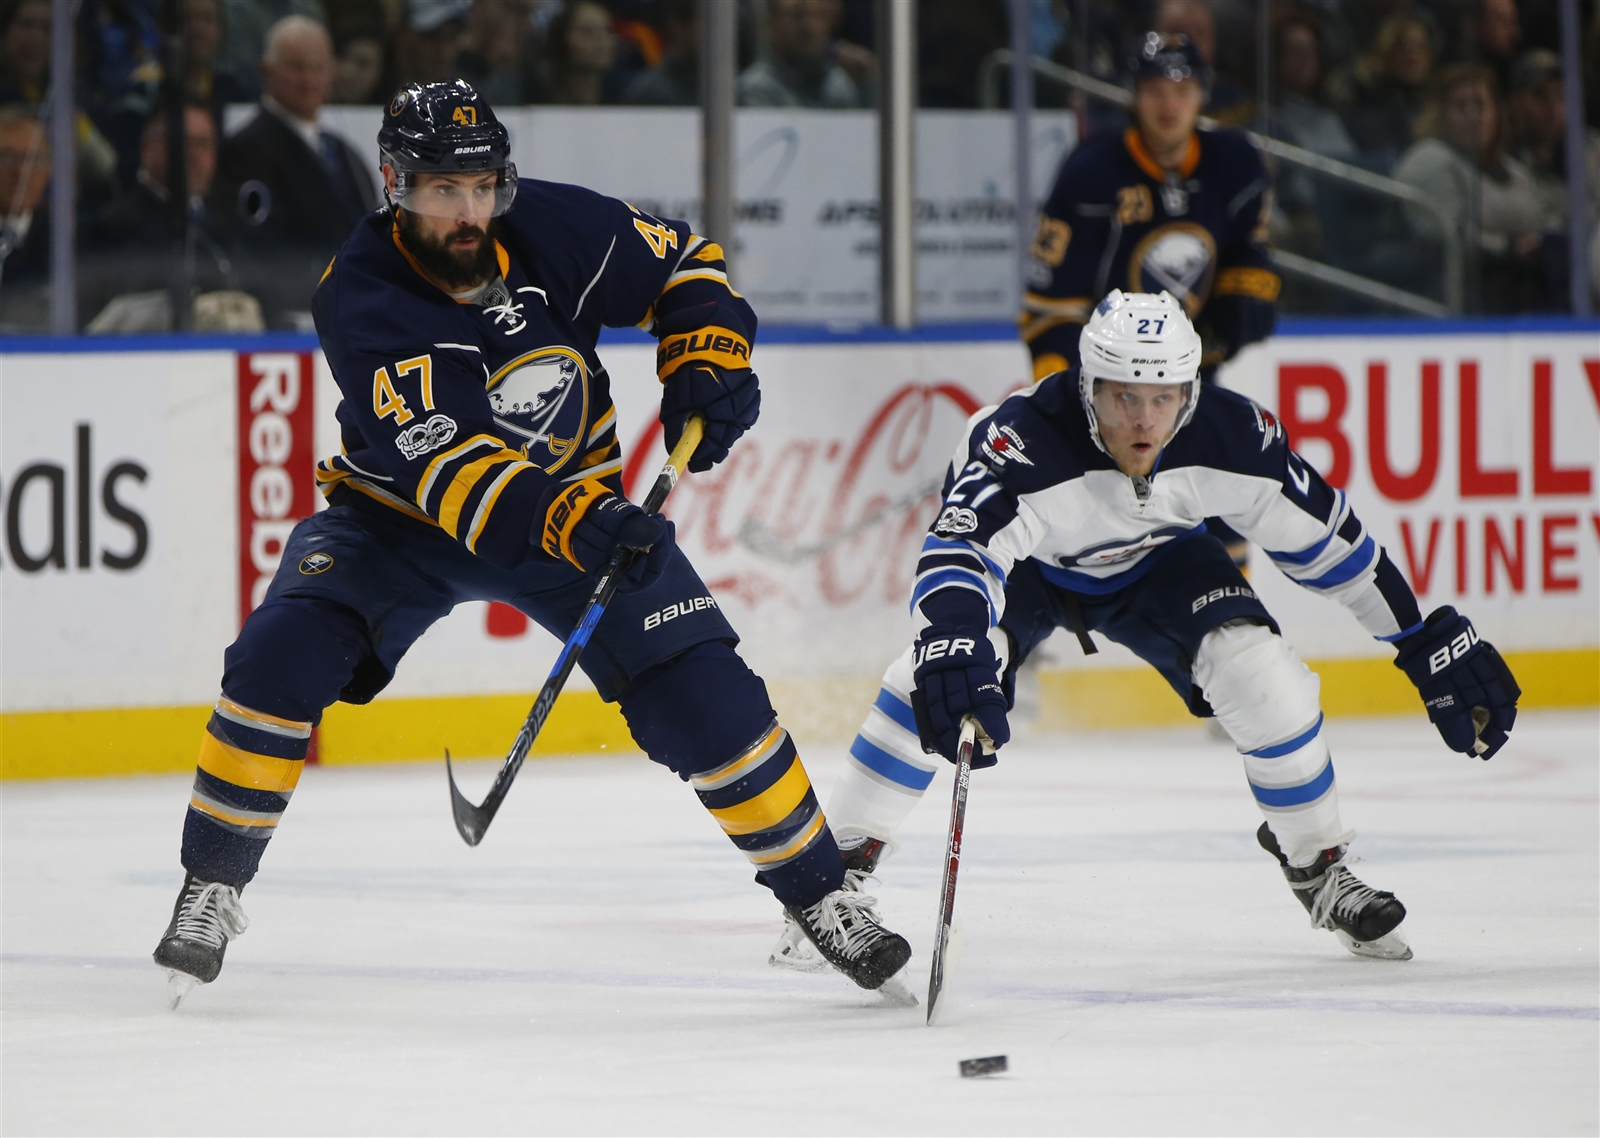 Inside the Sabres: Doubling down on expansion draft ideas